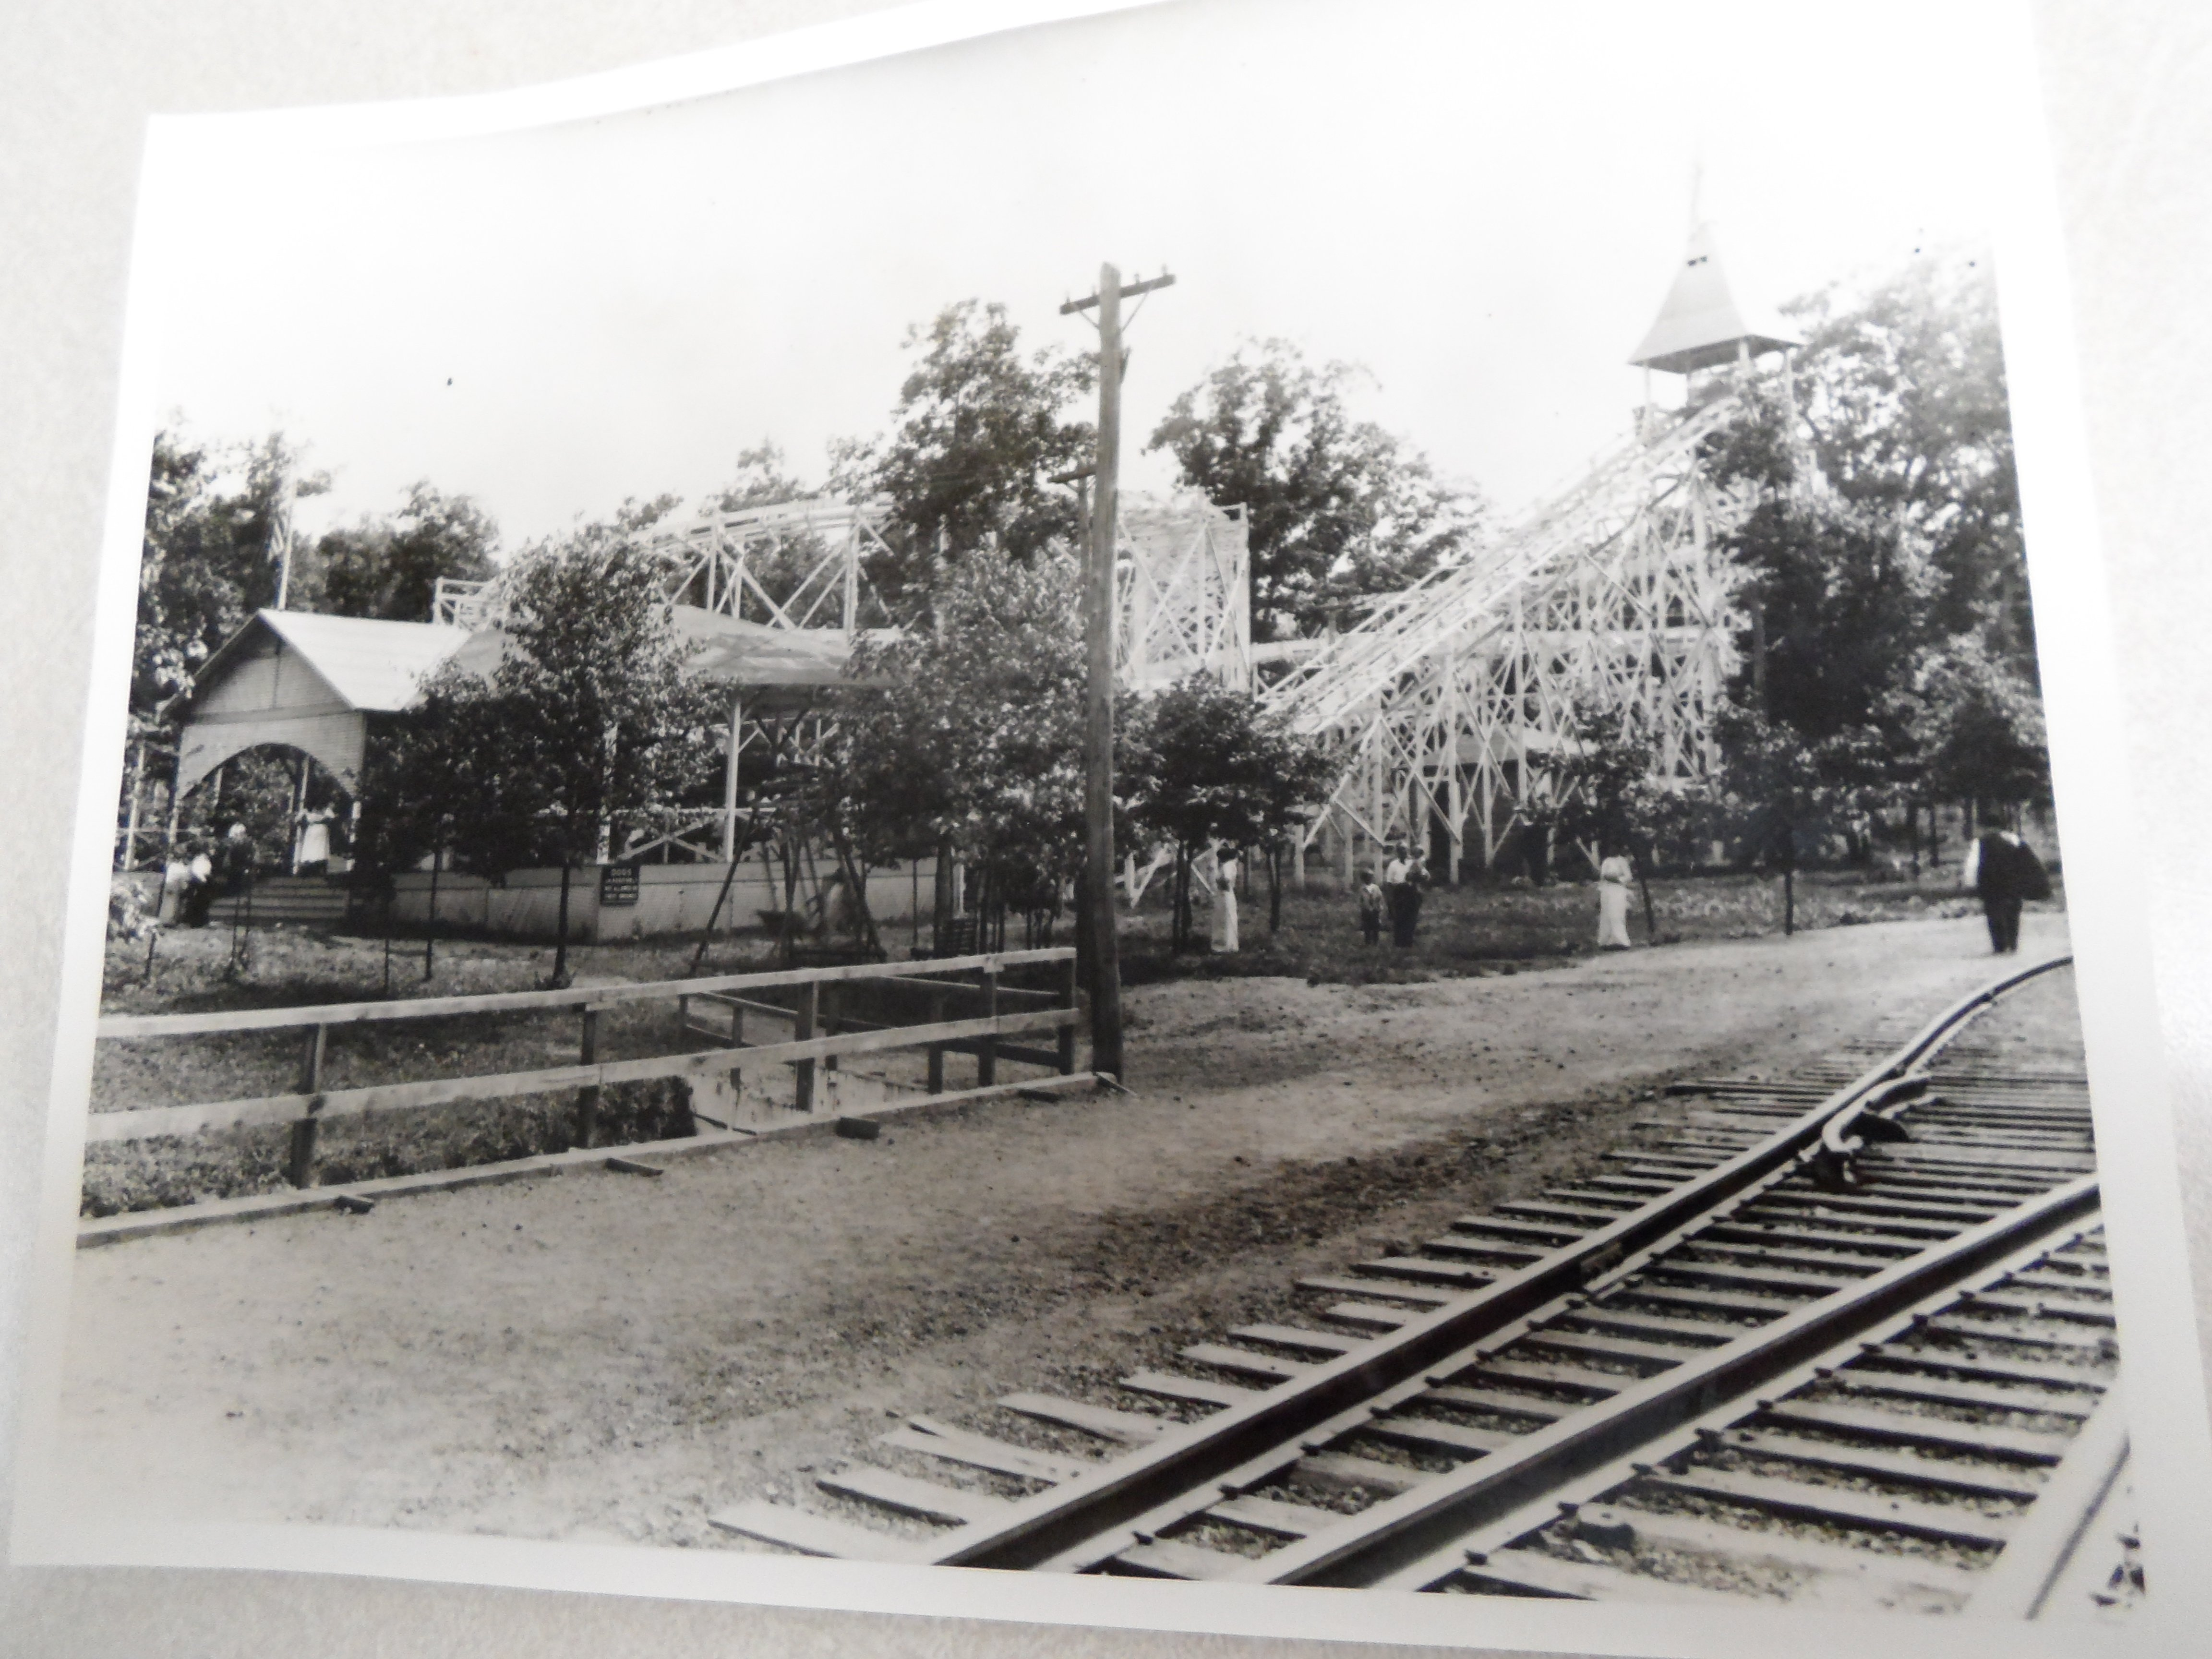 The Oak Park amusement park operated near Masontown in Preston County for about 20 years.